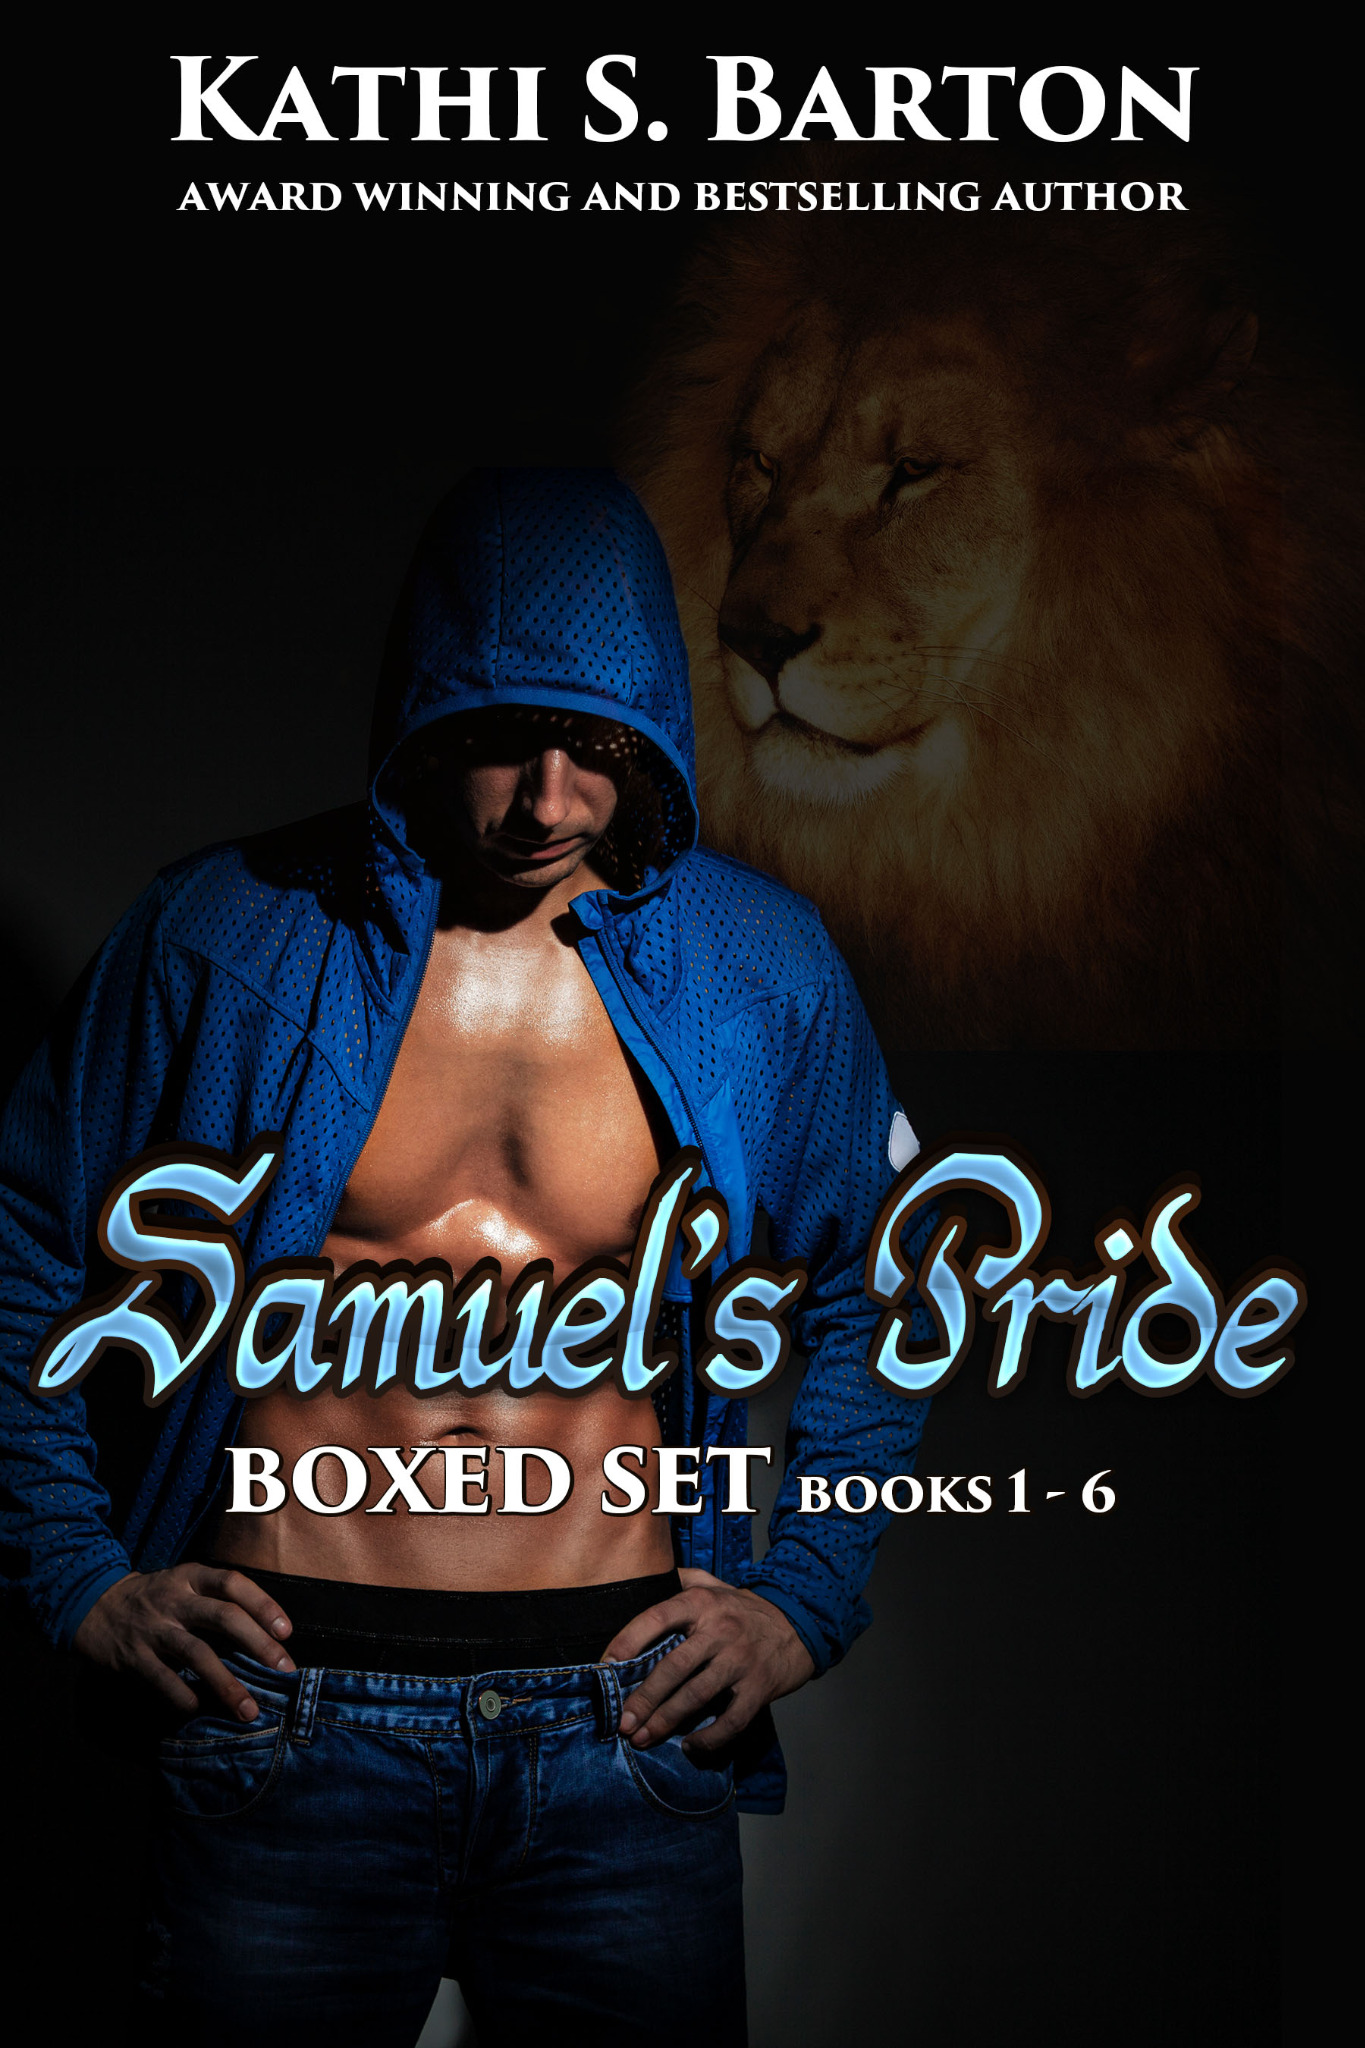 Samuel's Pride Boxed Set Books 1-6